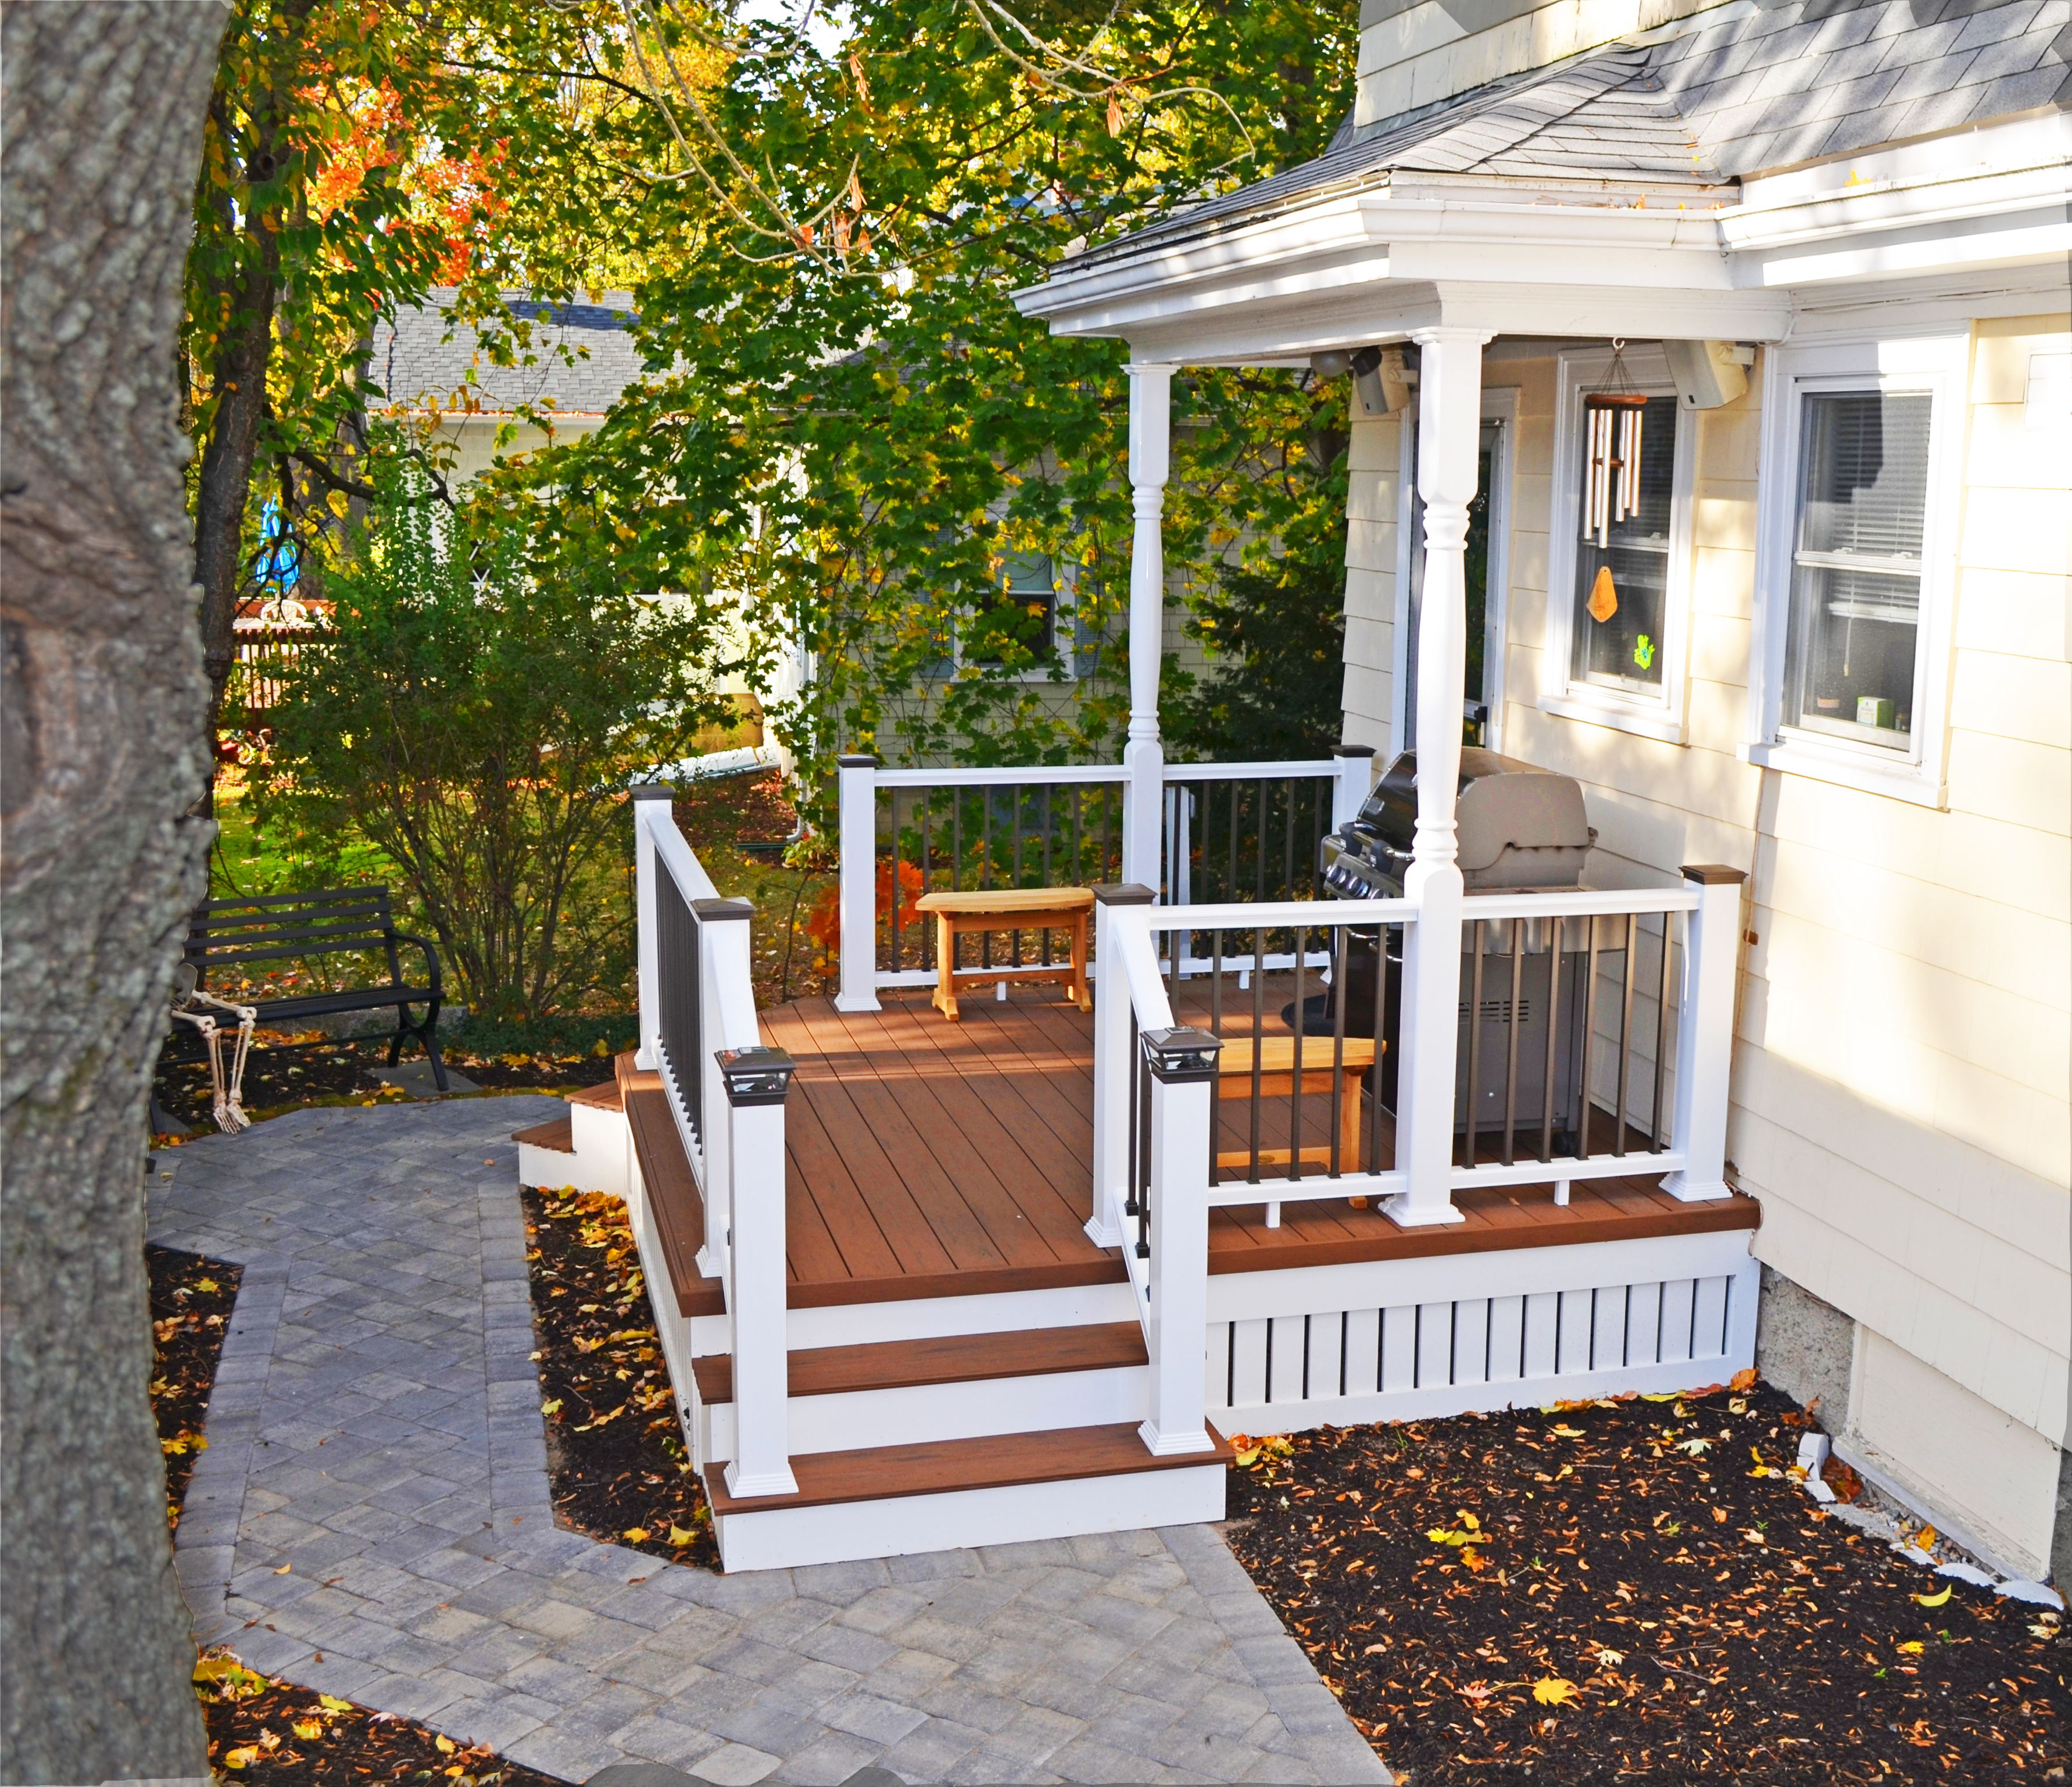 Found On Bing From Boston Decks And Porches Com Front Porch Design Side Porch Porch Design